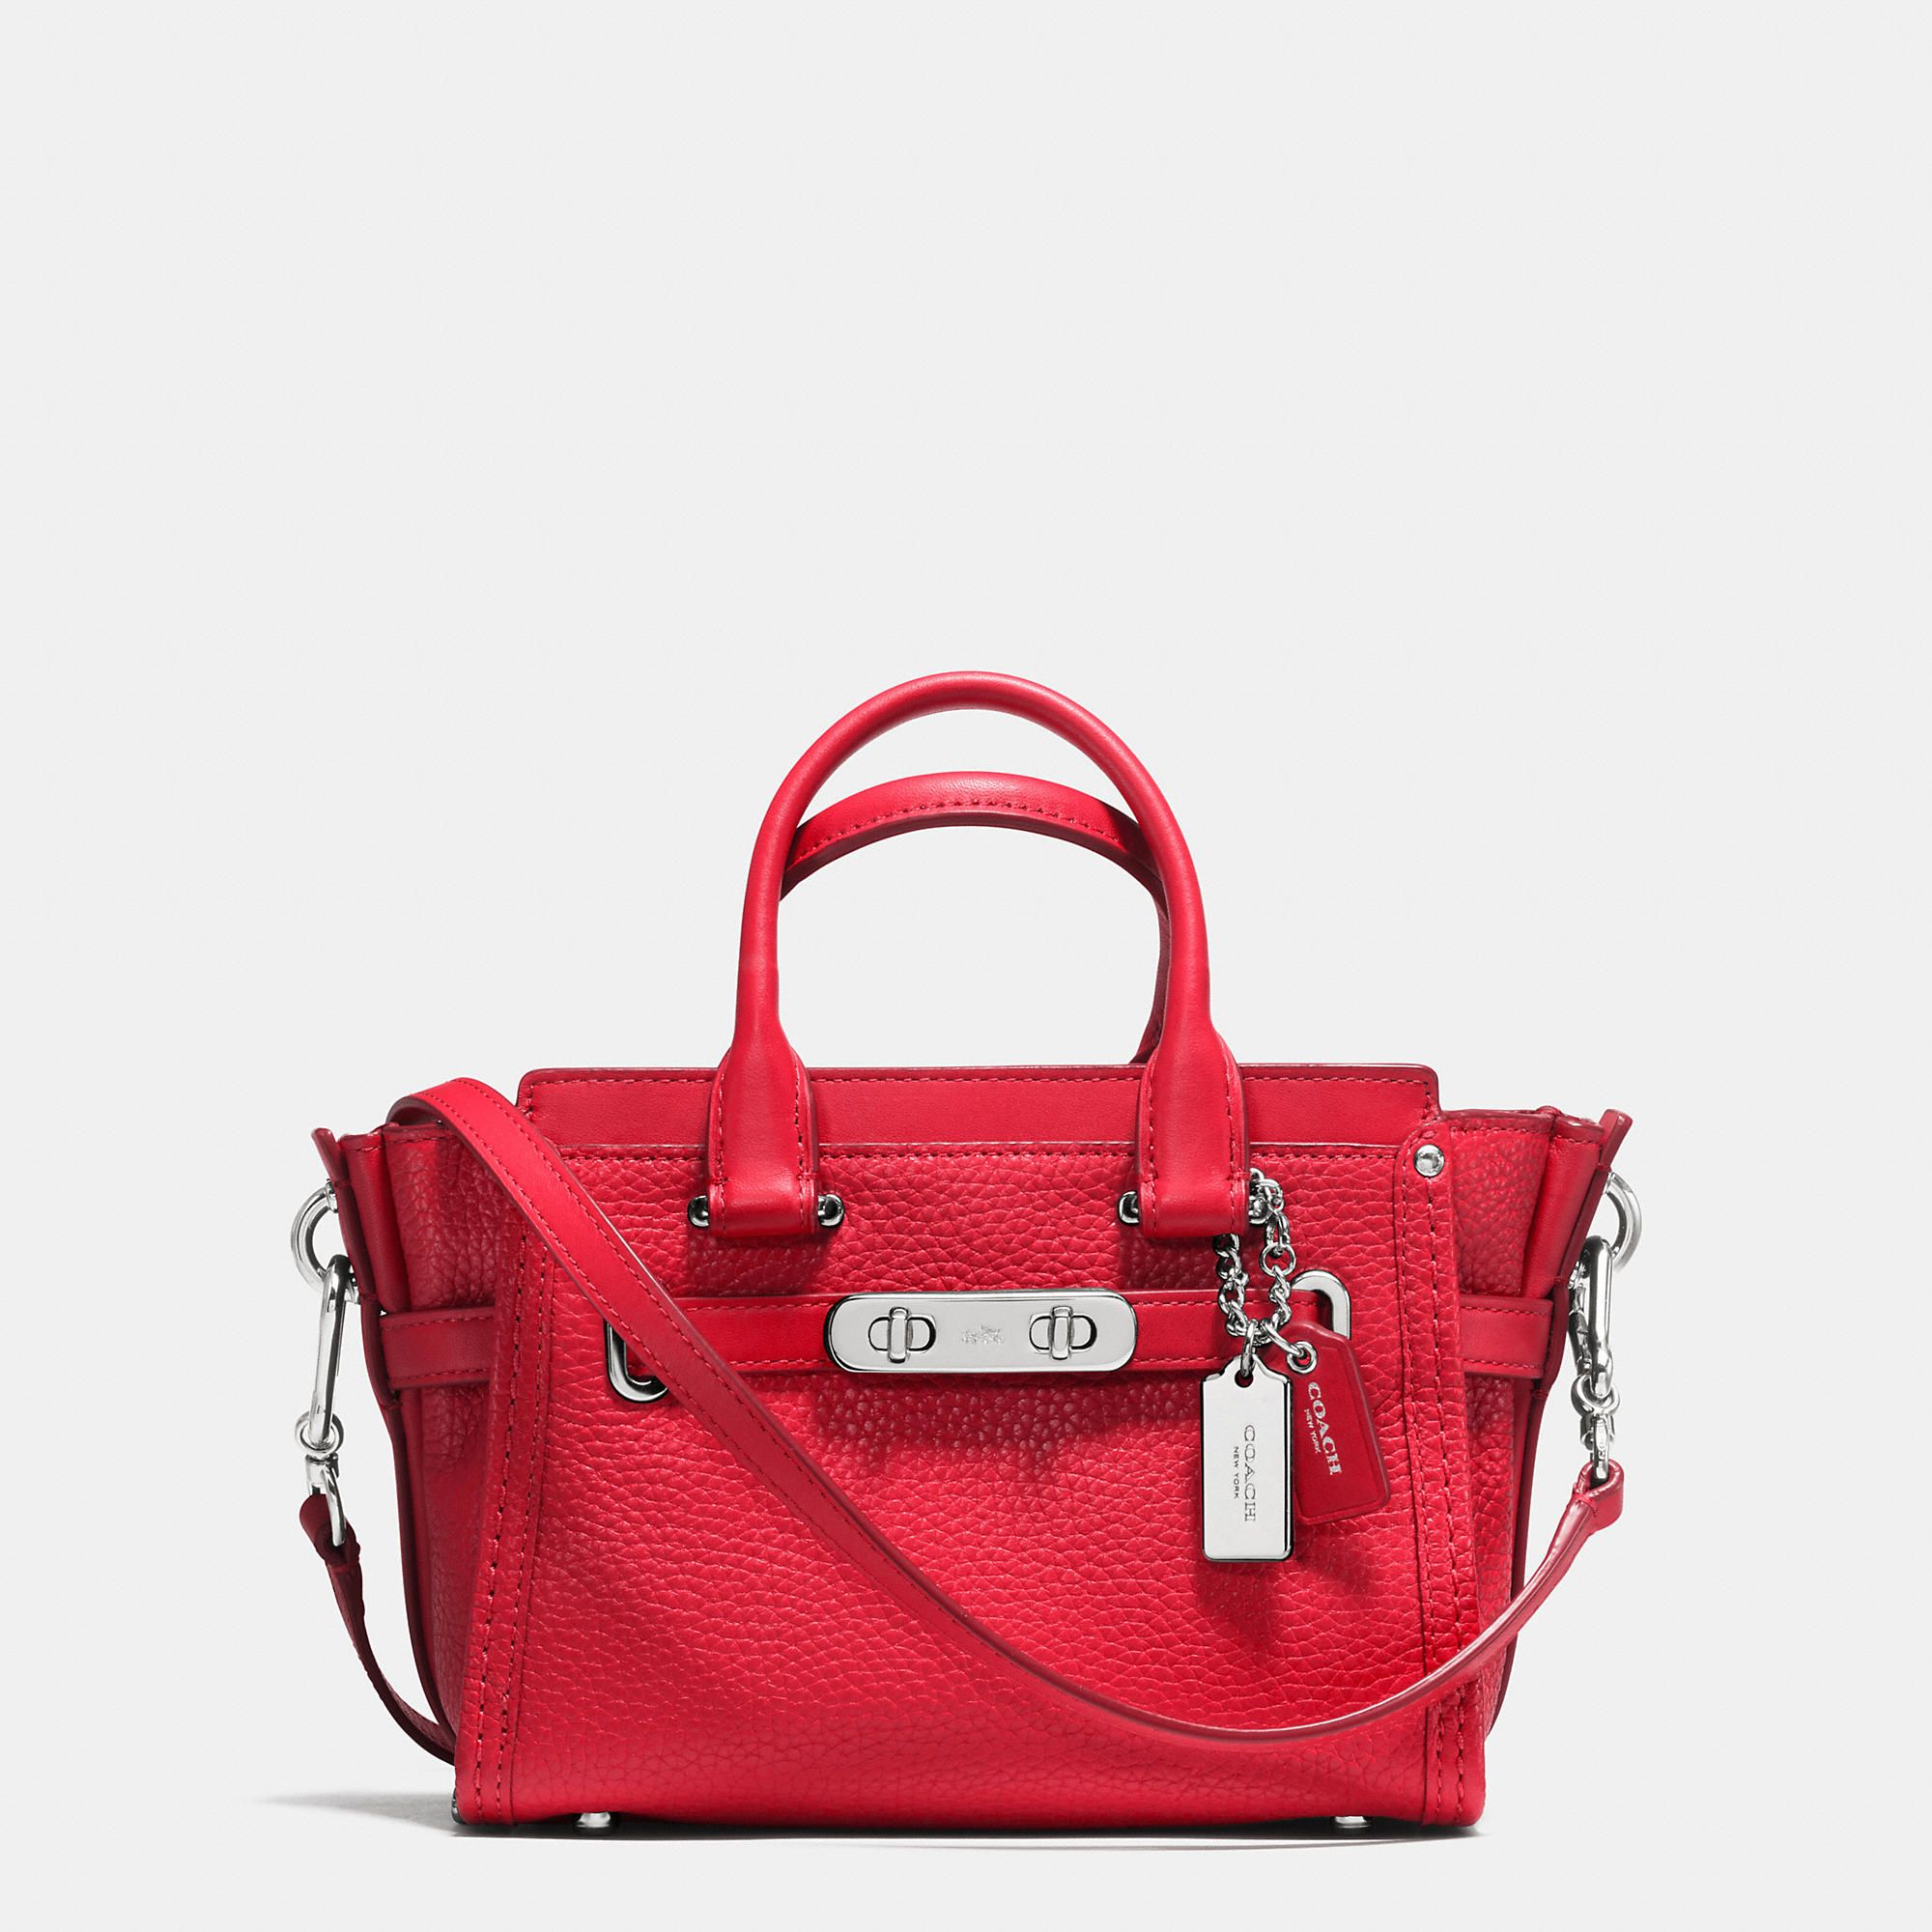 Coach   Red Swagger 20 In Pebble Leather   Lyst   Coach   Pinterest ... 71065faef7